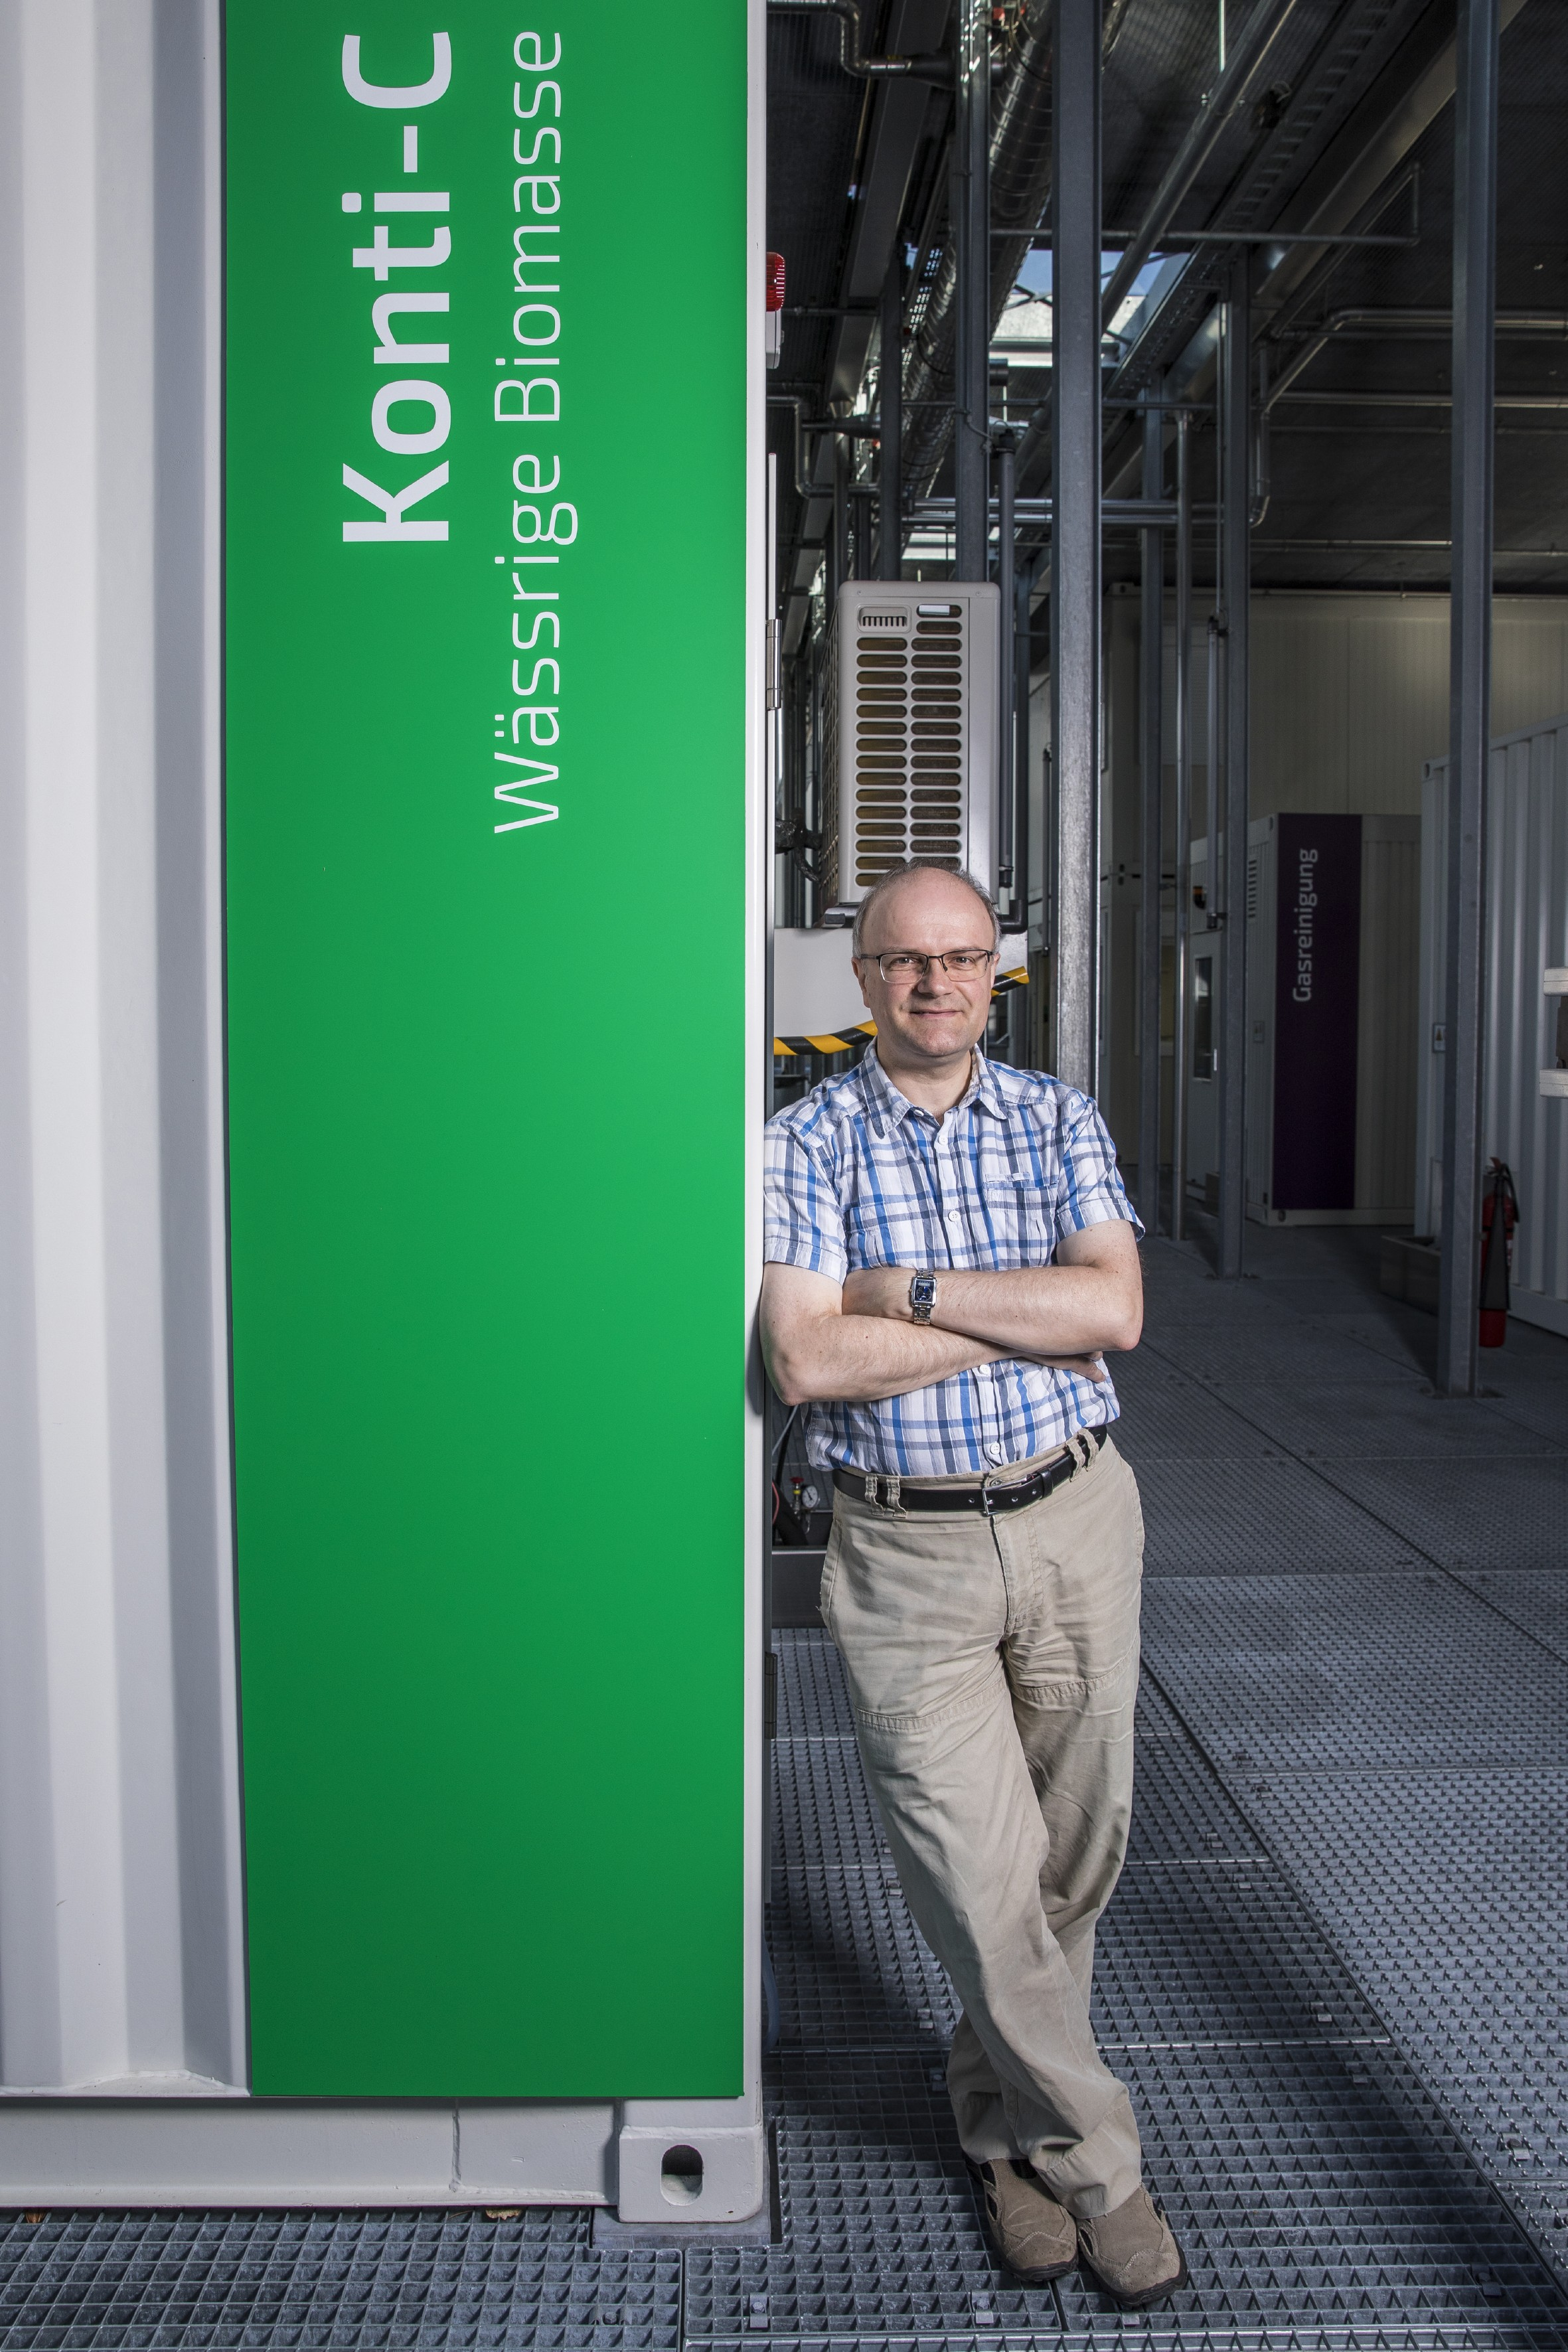 Frédéric Vogel at the experimental plant in which methane is formed from spent coffee grounds left over during the production of instant coffee. (Photo: Paul Scherrer Institute/Mahir Dzambegovic)